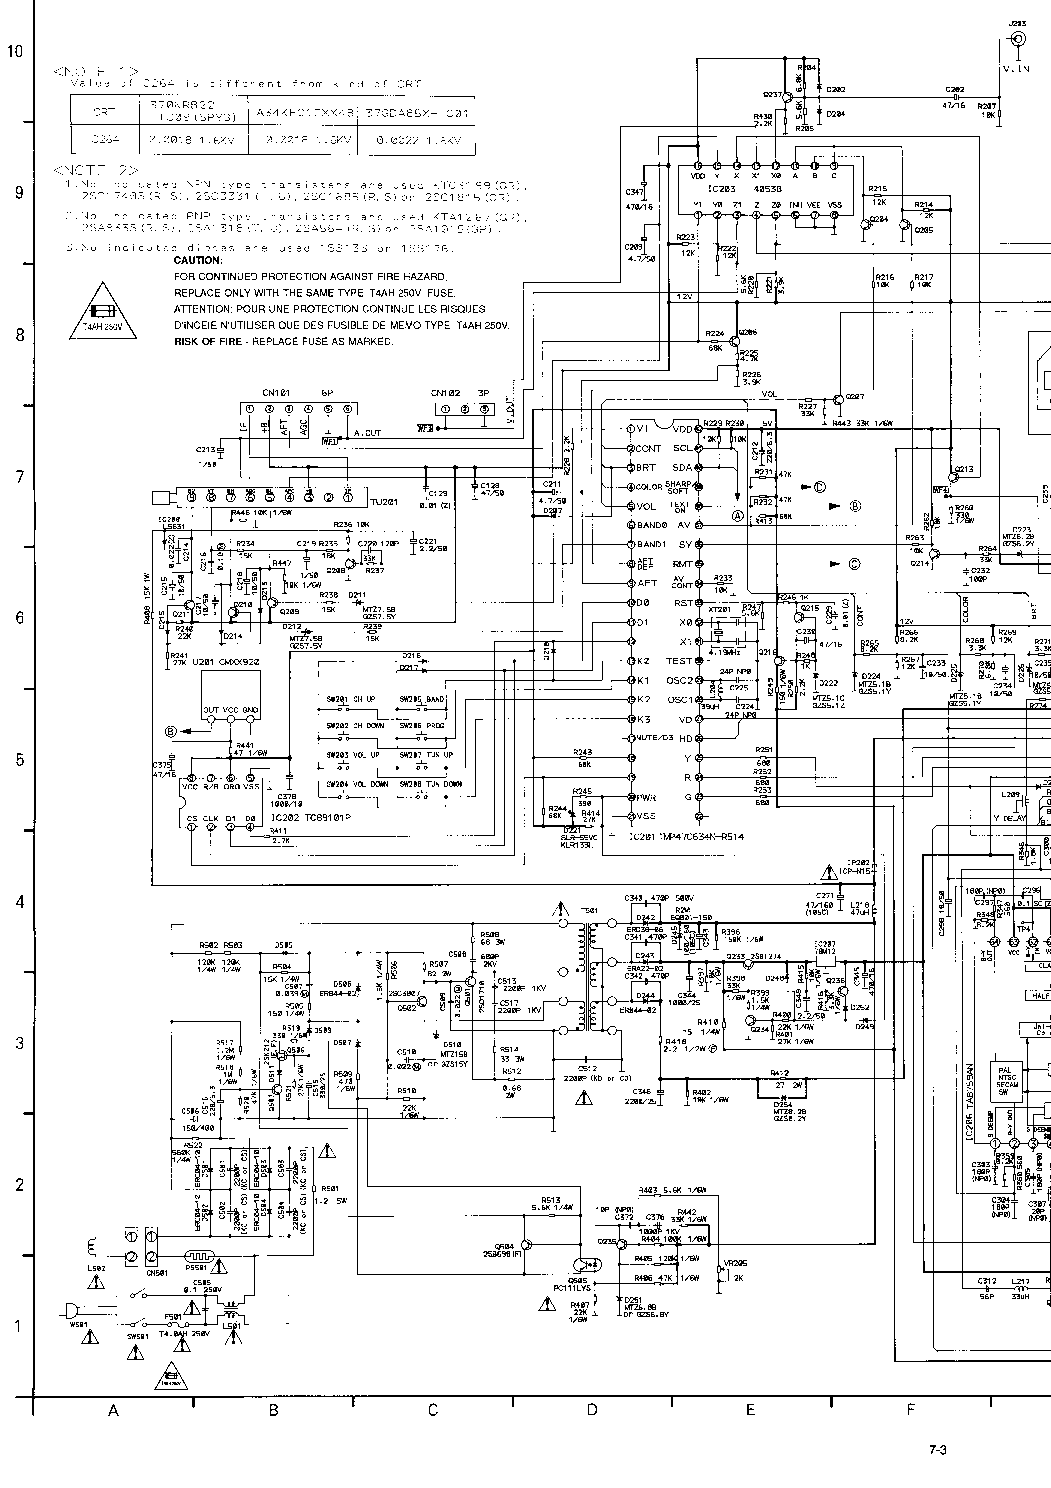 FUNAI TV-1400T MK7 SCH Service Manual download, schematics